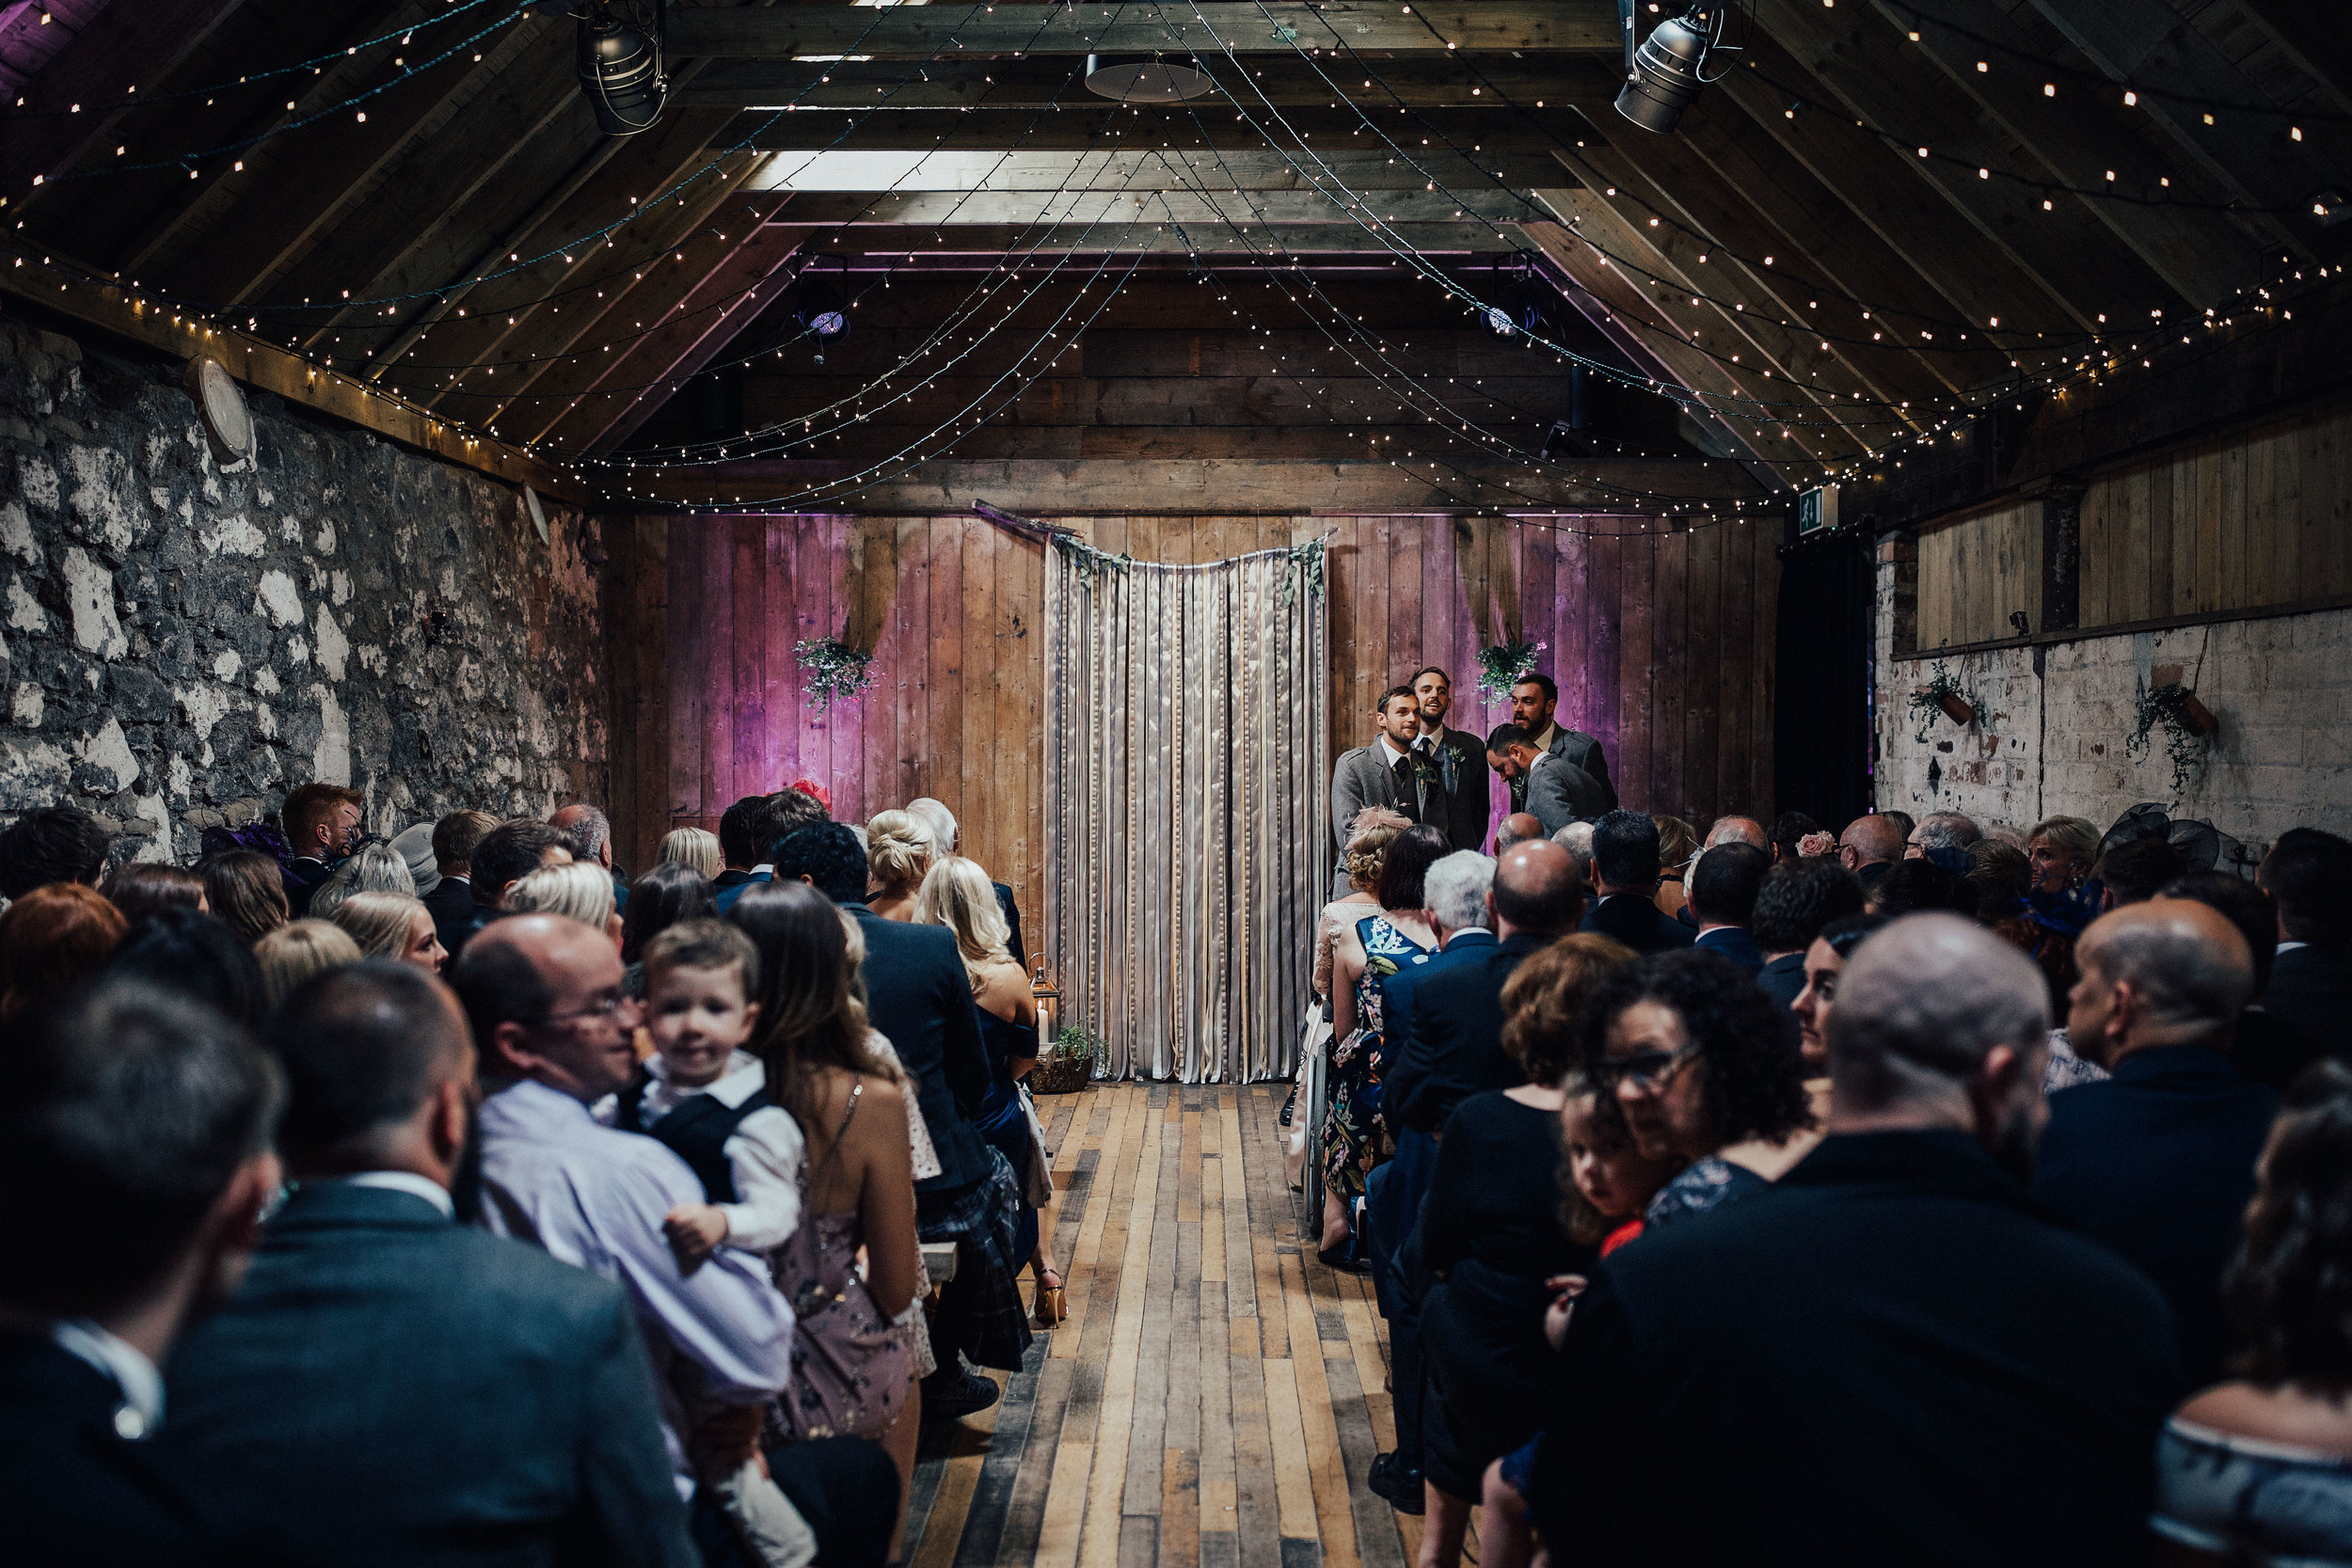 BYRE_AT_INCHYRA_WEDDING_PHOTOGRAPHER_PJ_PHILLIPS_PHOTOGRAPHY_KAYLEIGH_ANDREW_74.jpg